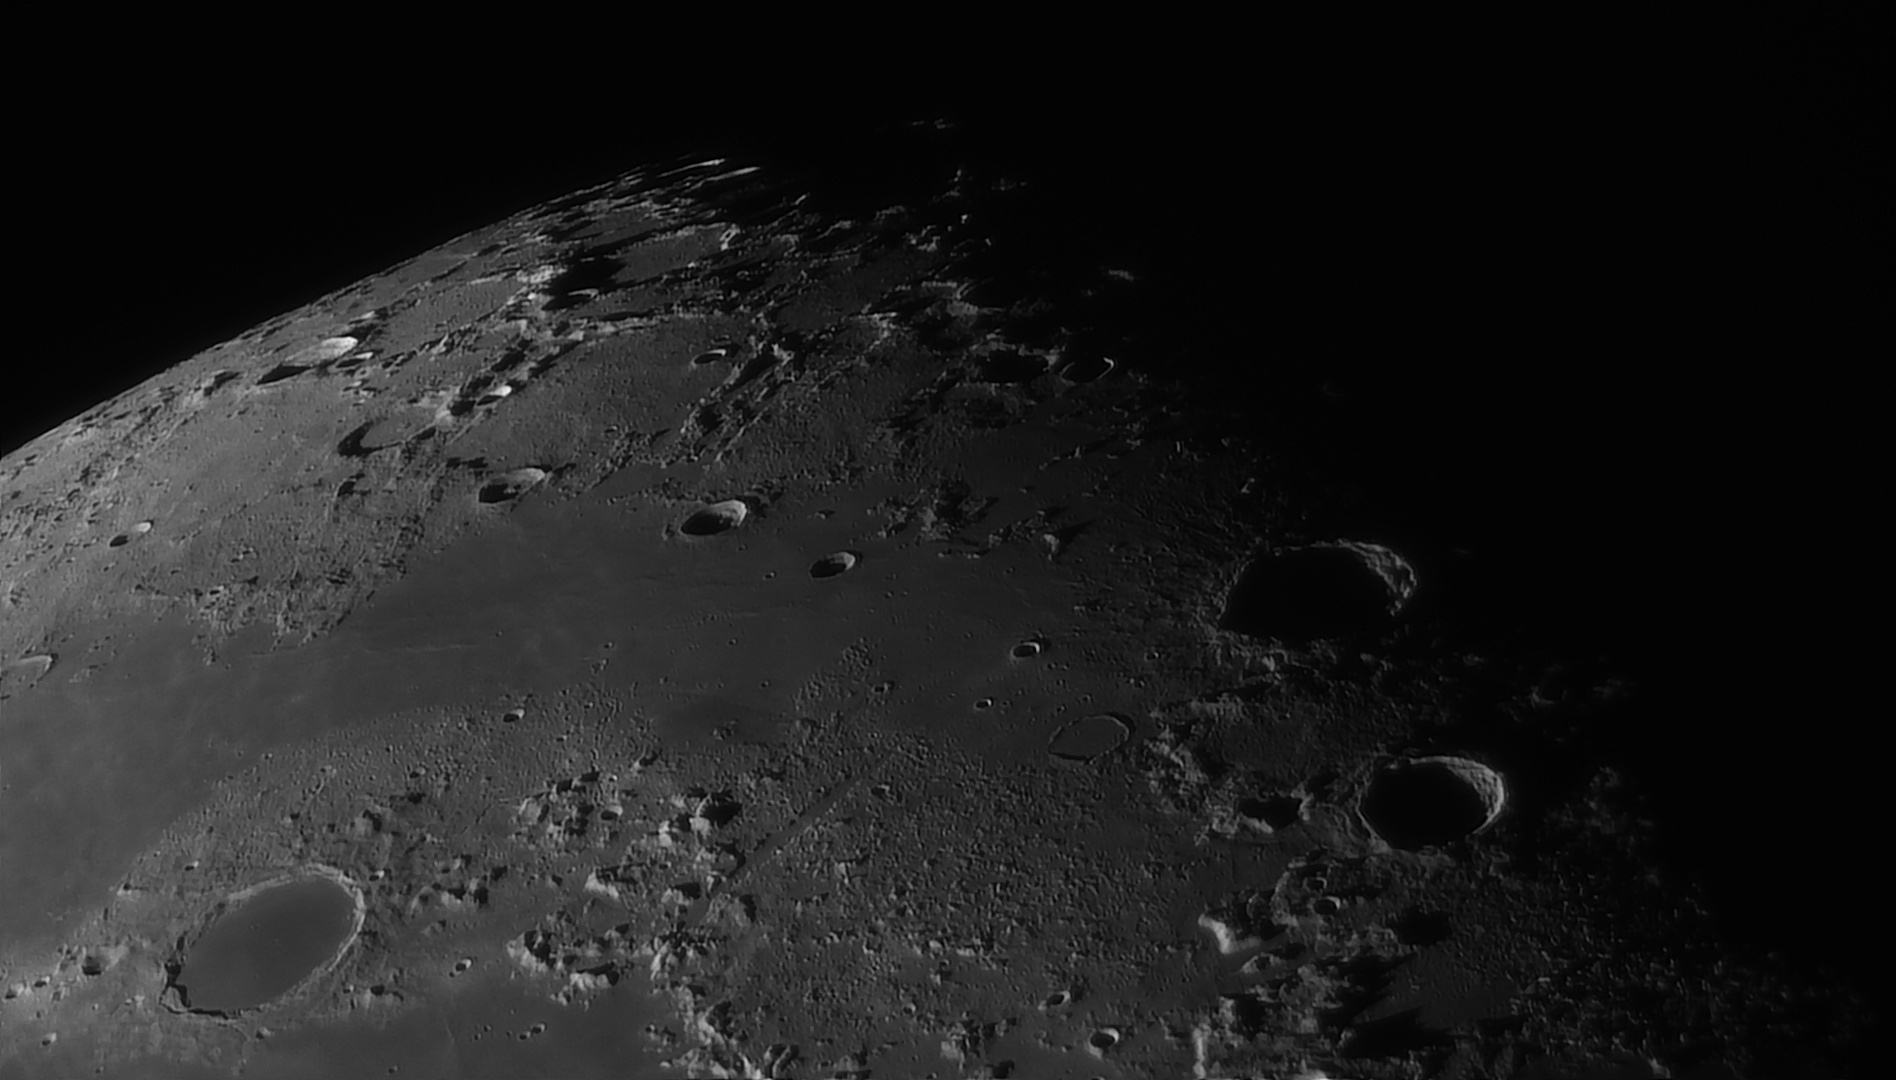 5e519492b9c9e_Moon_055253_160120_ZWOASI290MM_Rouge_23A_AS_P35_lapl6_ap567_AI_Deconvolution_2--.jpg.01925e547d8b6696a3cd420483747a0d.jpg